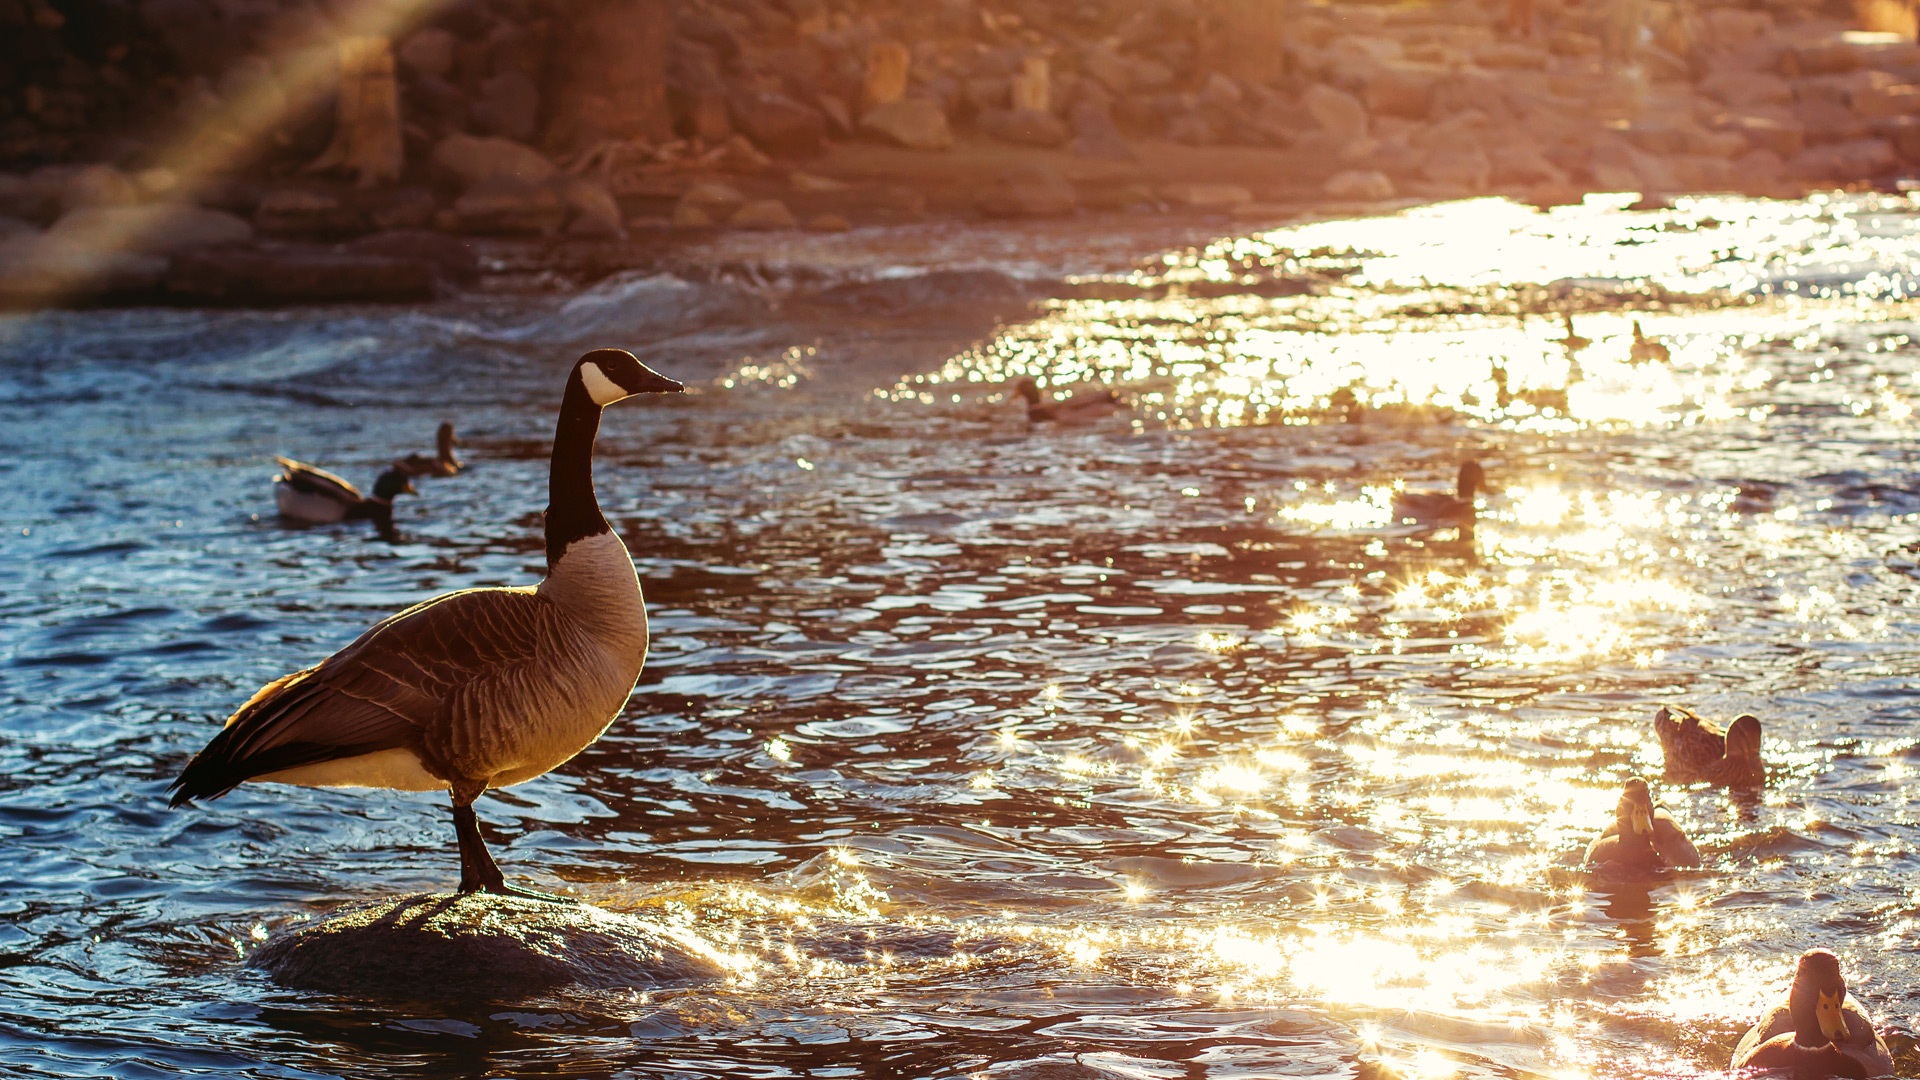 A goose standing on a rock in the Truckee River